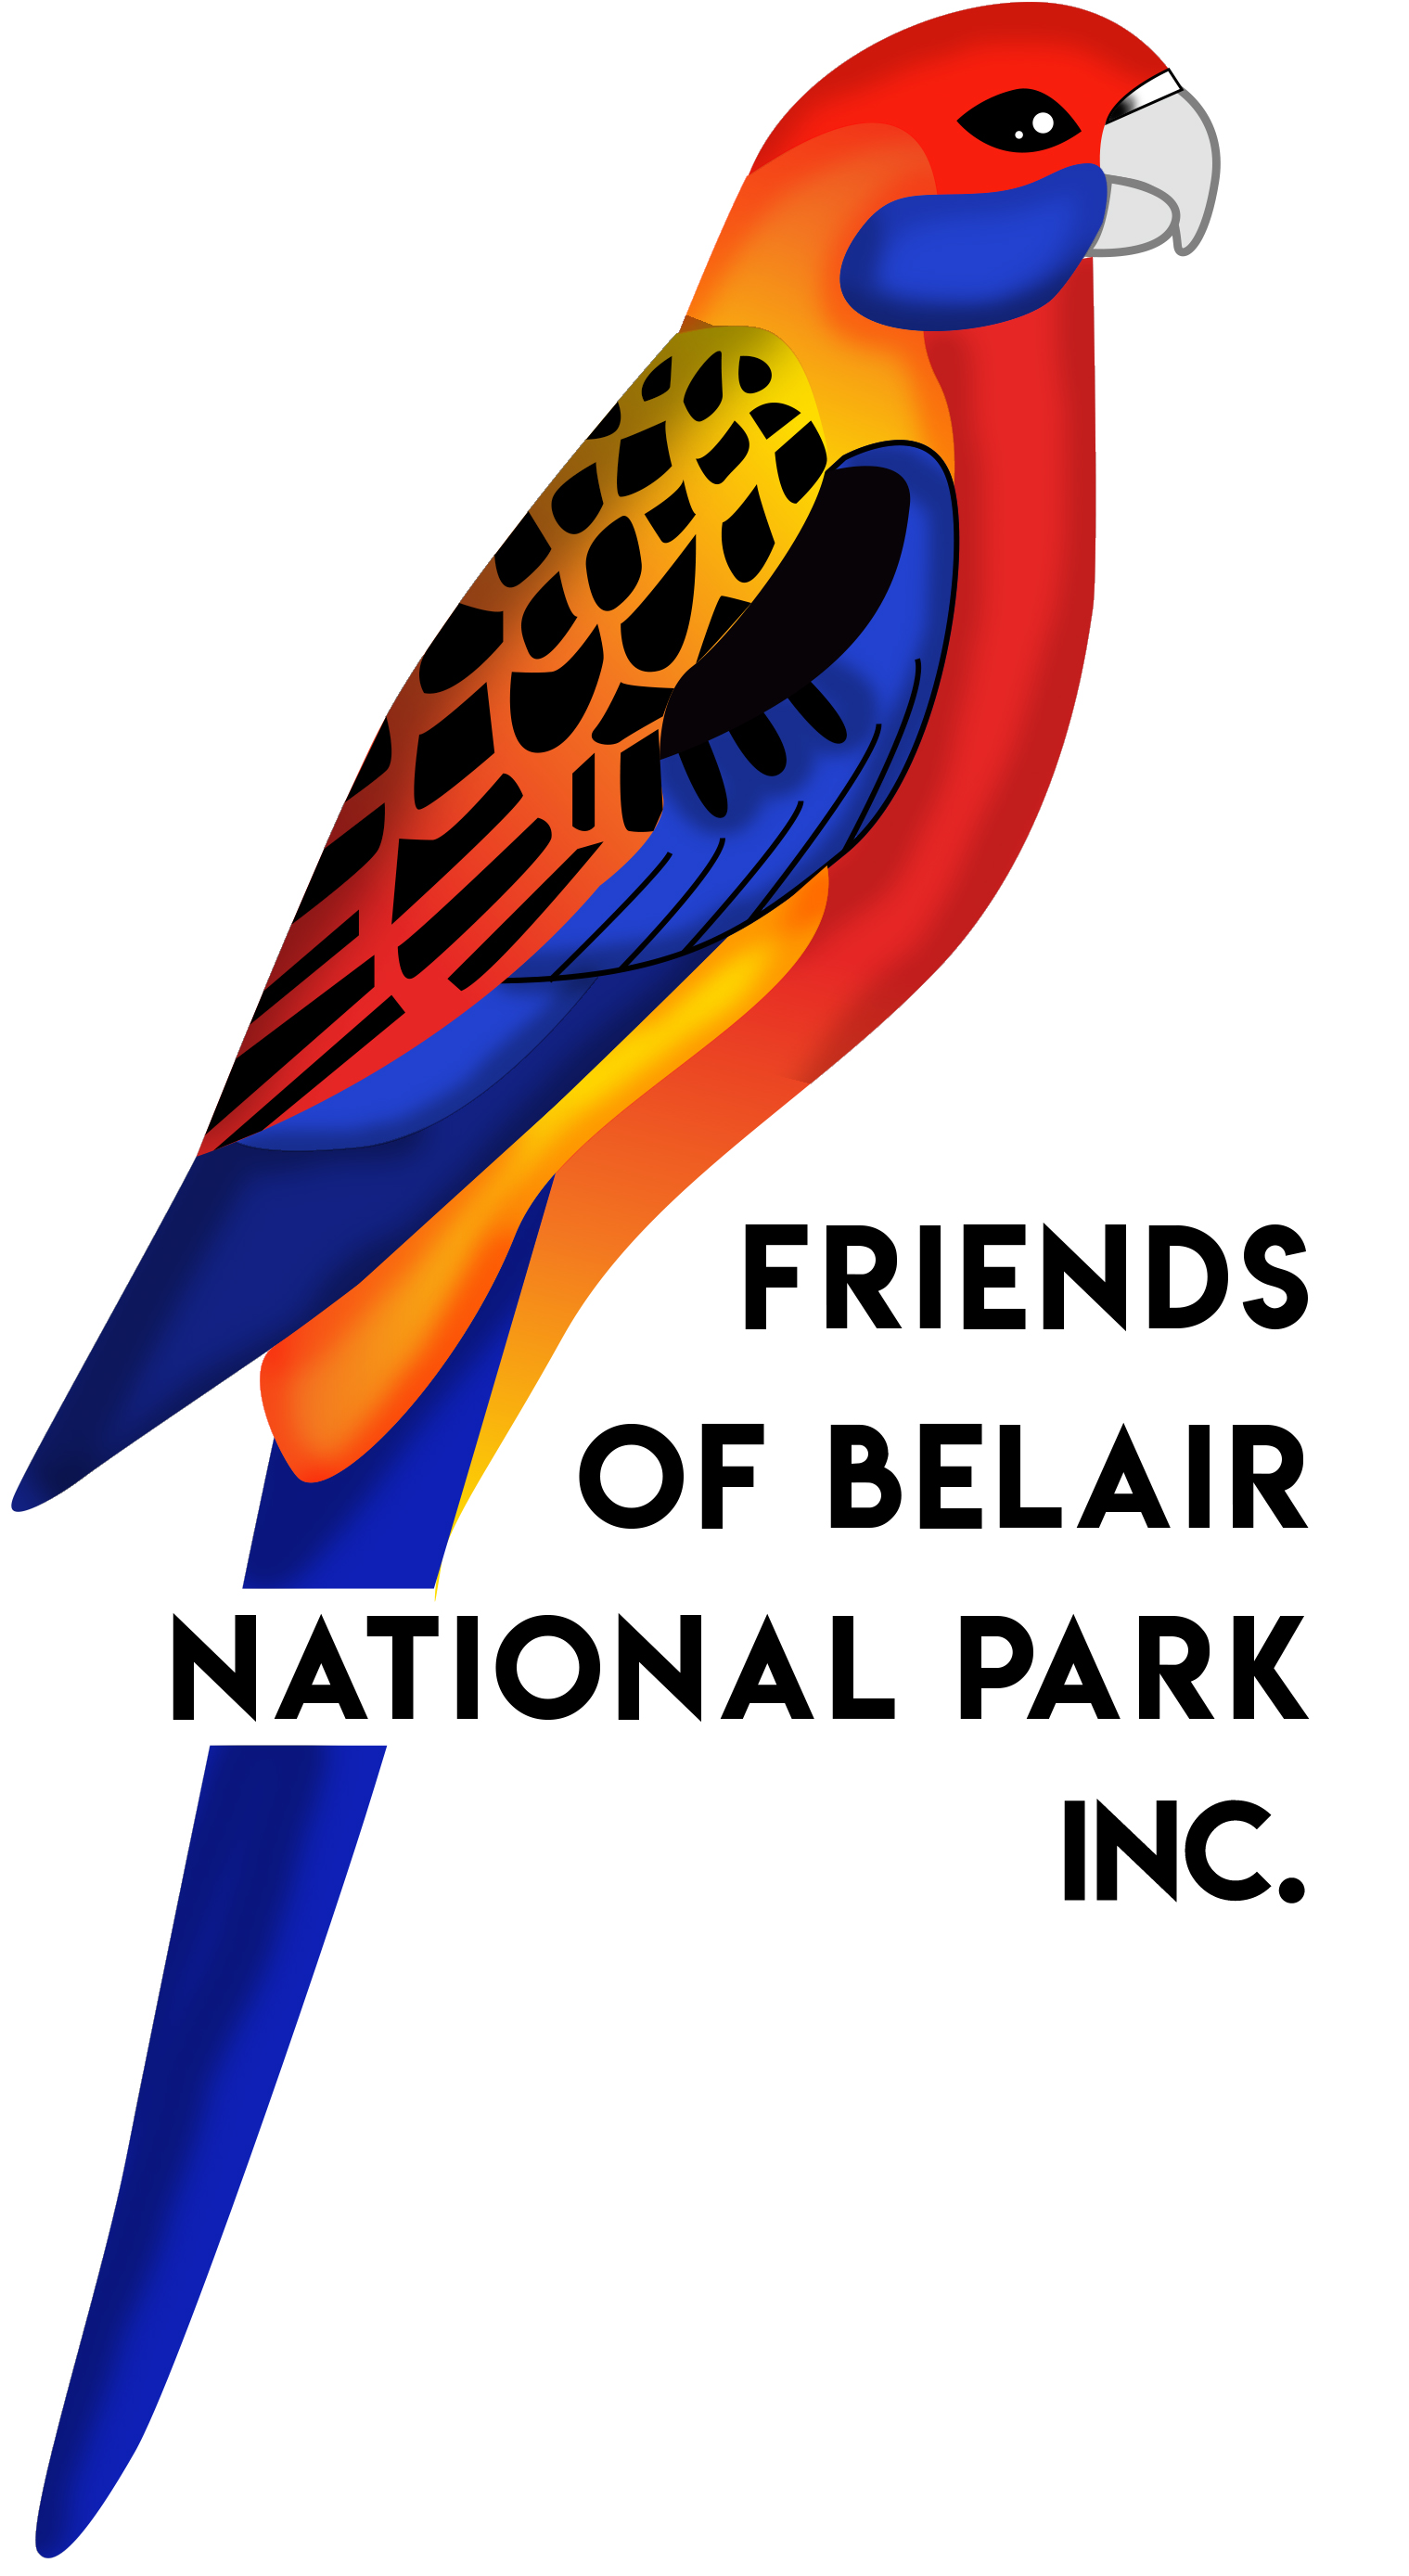 Friends of National Park logo